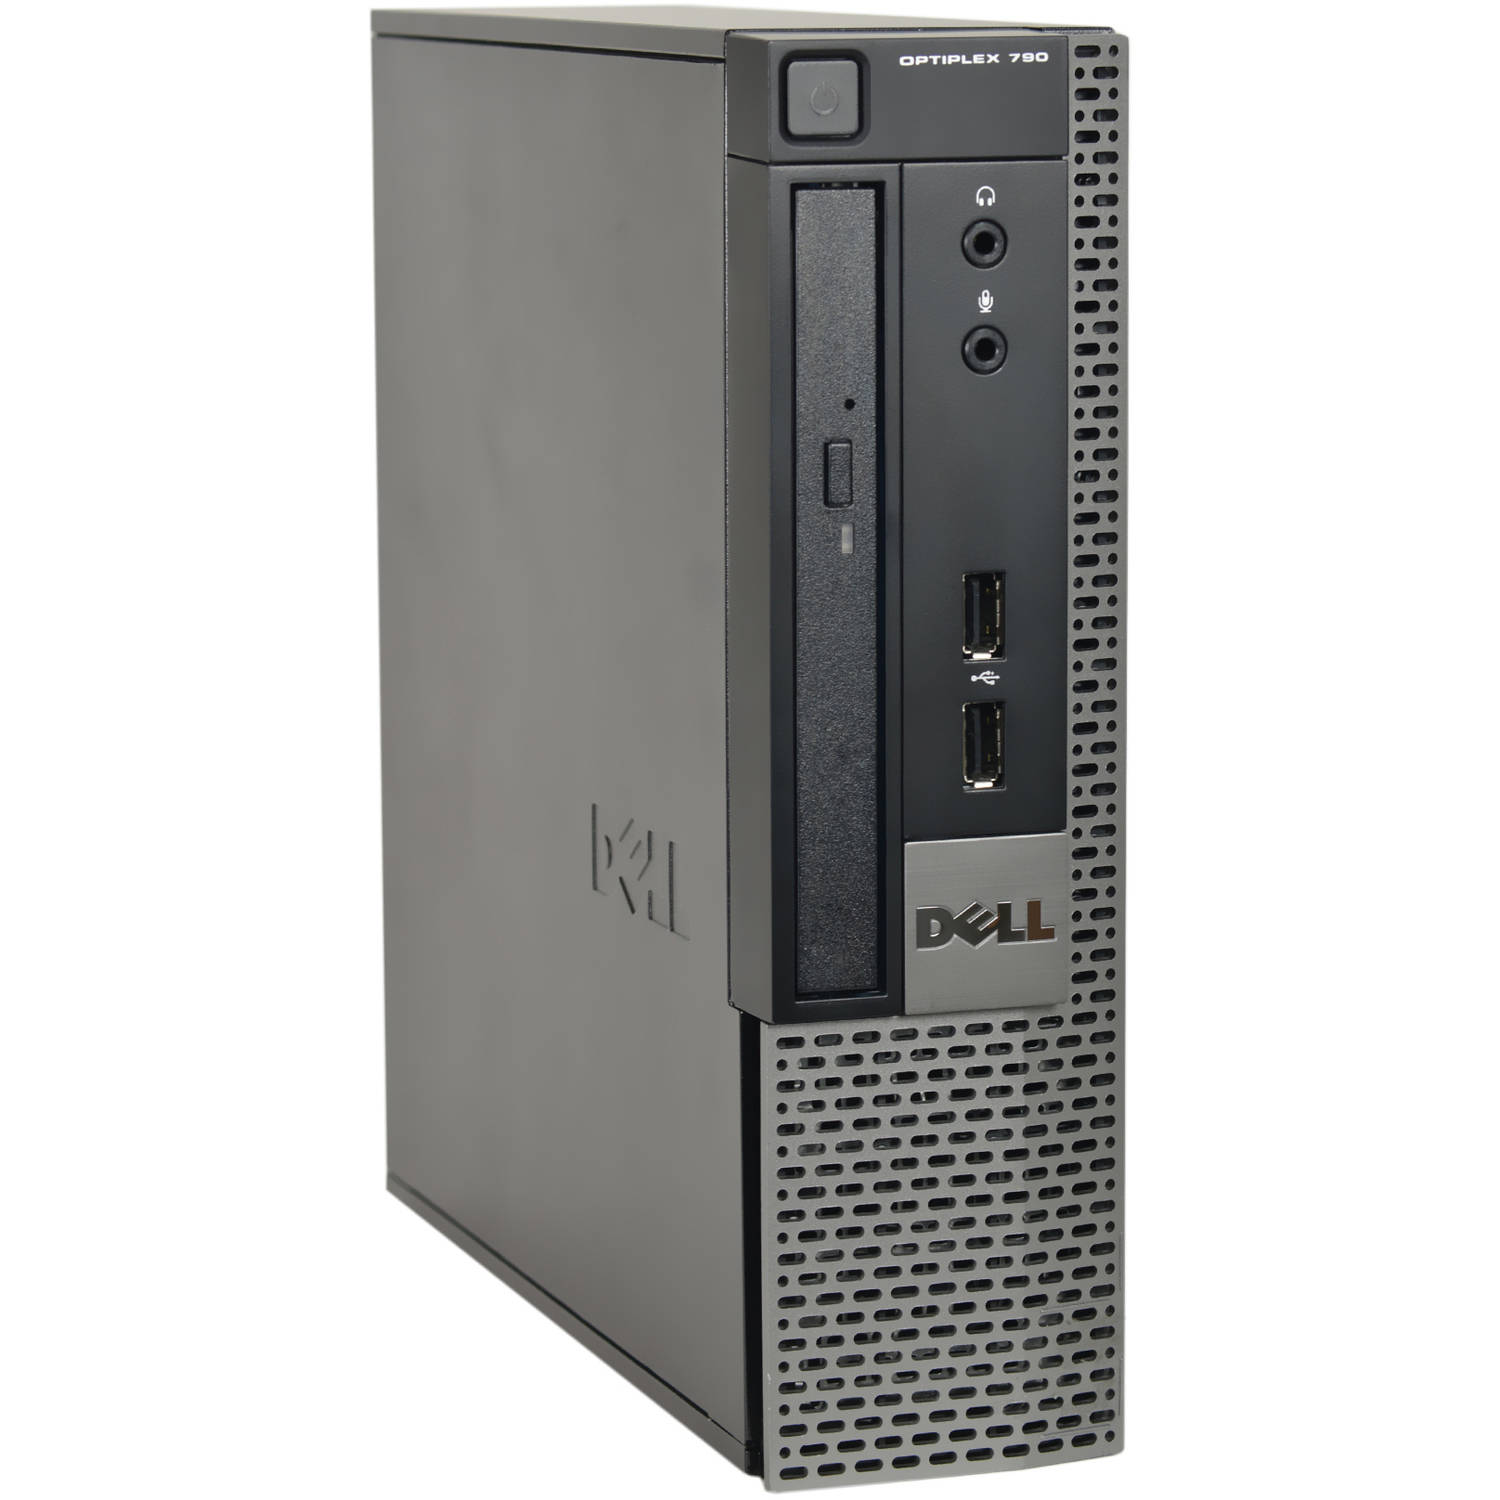 Refurbished Dell OptiPlex 390-T Desktop PC with Intel Core i5-2400  Processor, 8GB Memory, 500GB Hard Drive and Windows 10 Home (Monitor Not  Included)